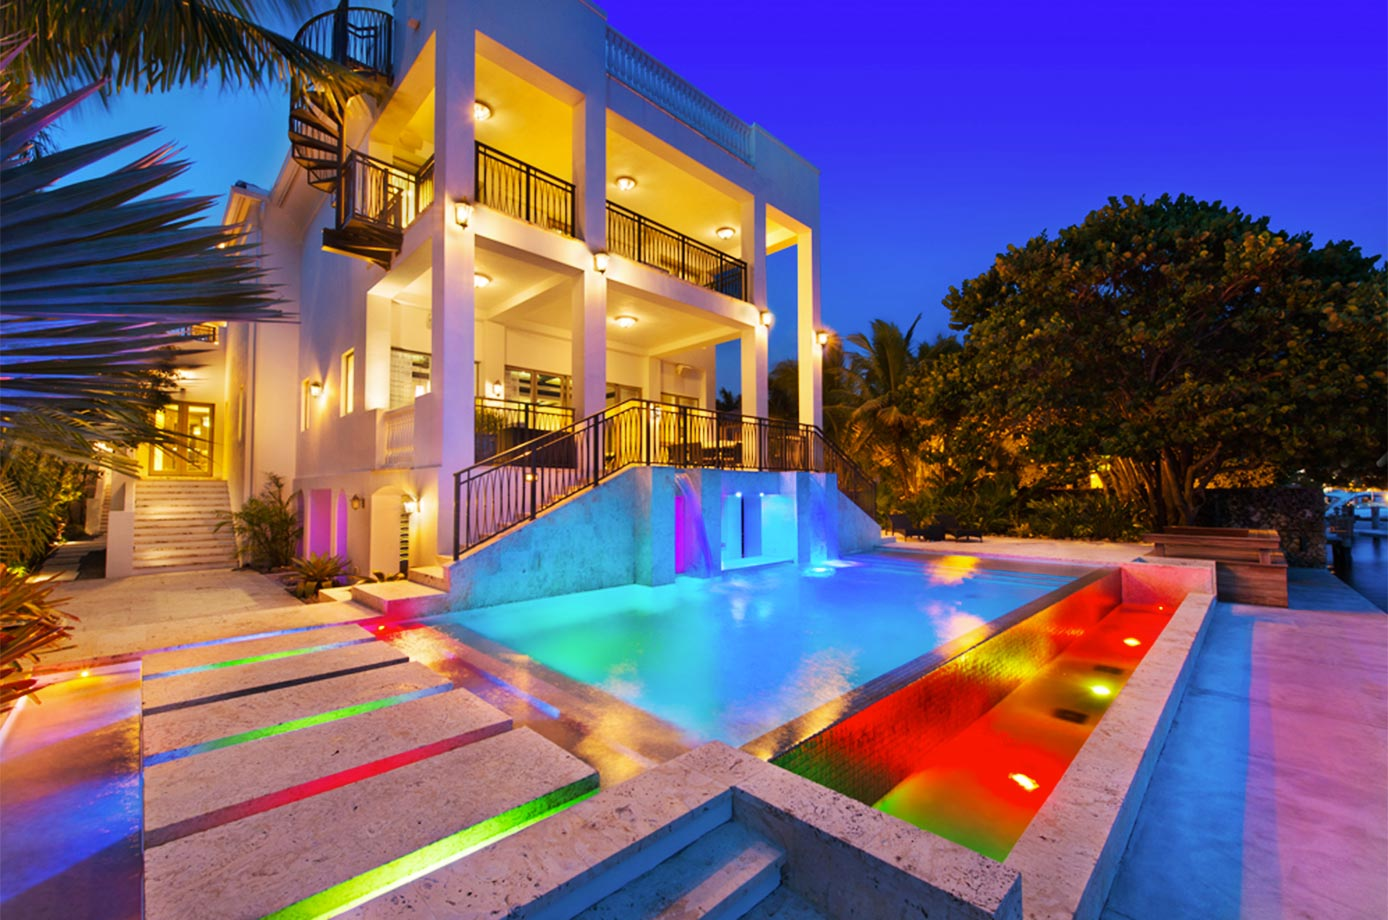 LeBron purchased this home in Miami for about $9 million in 2010.